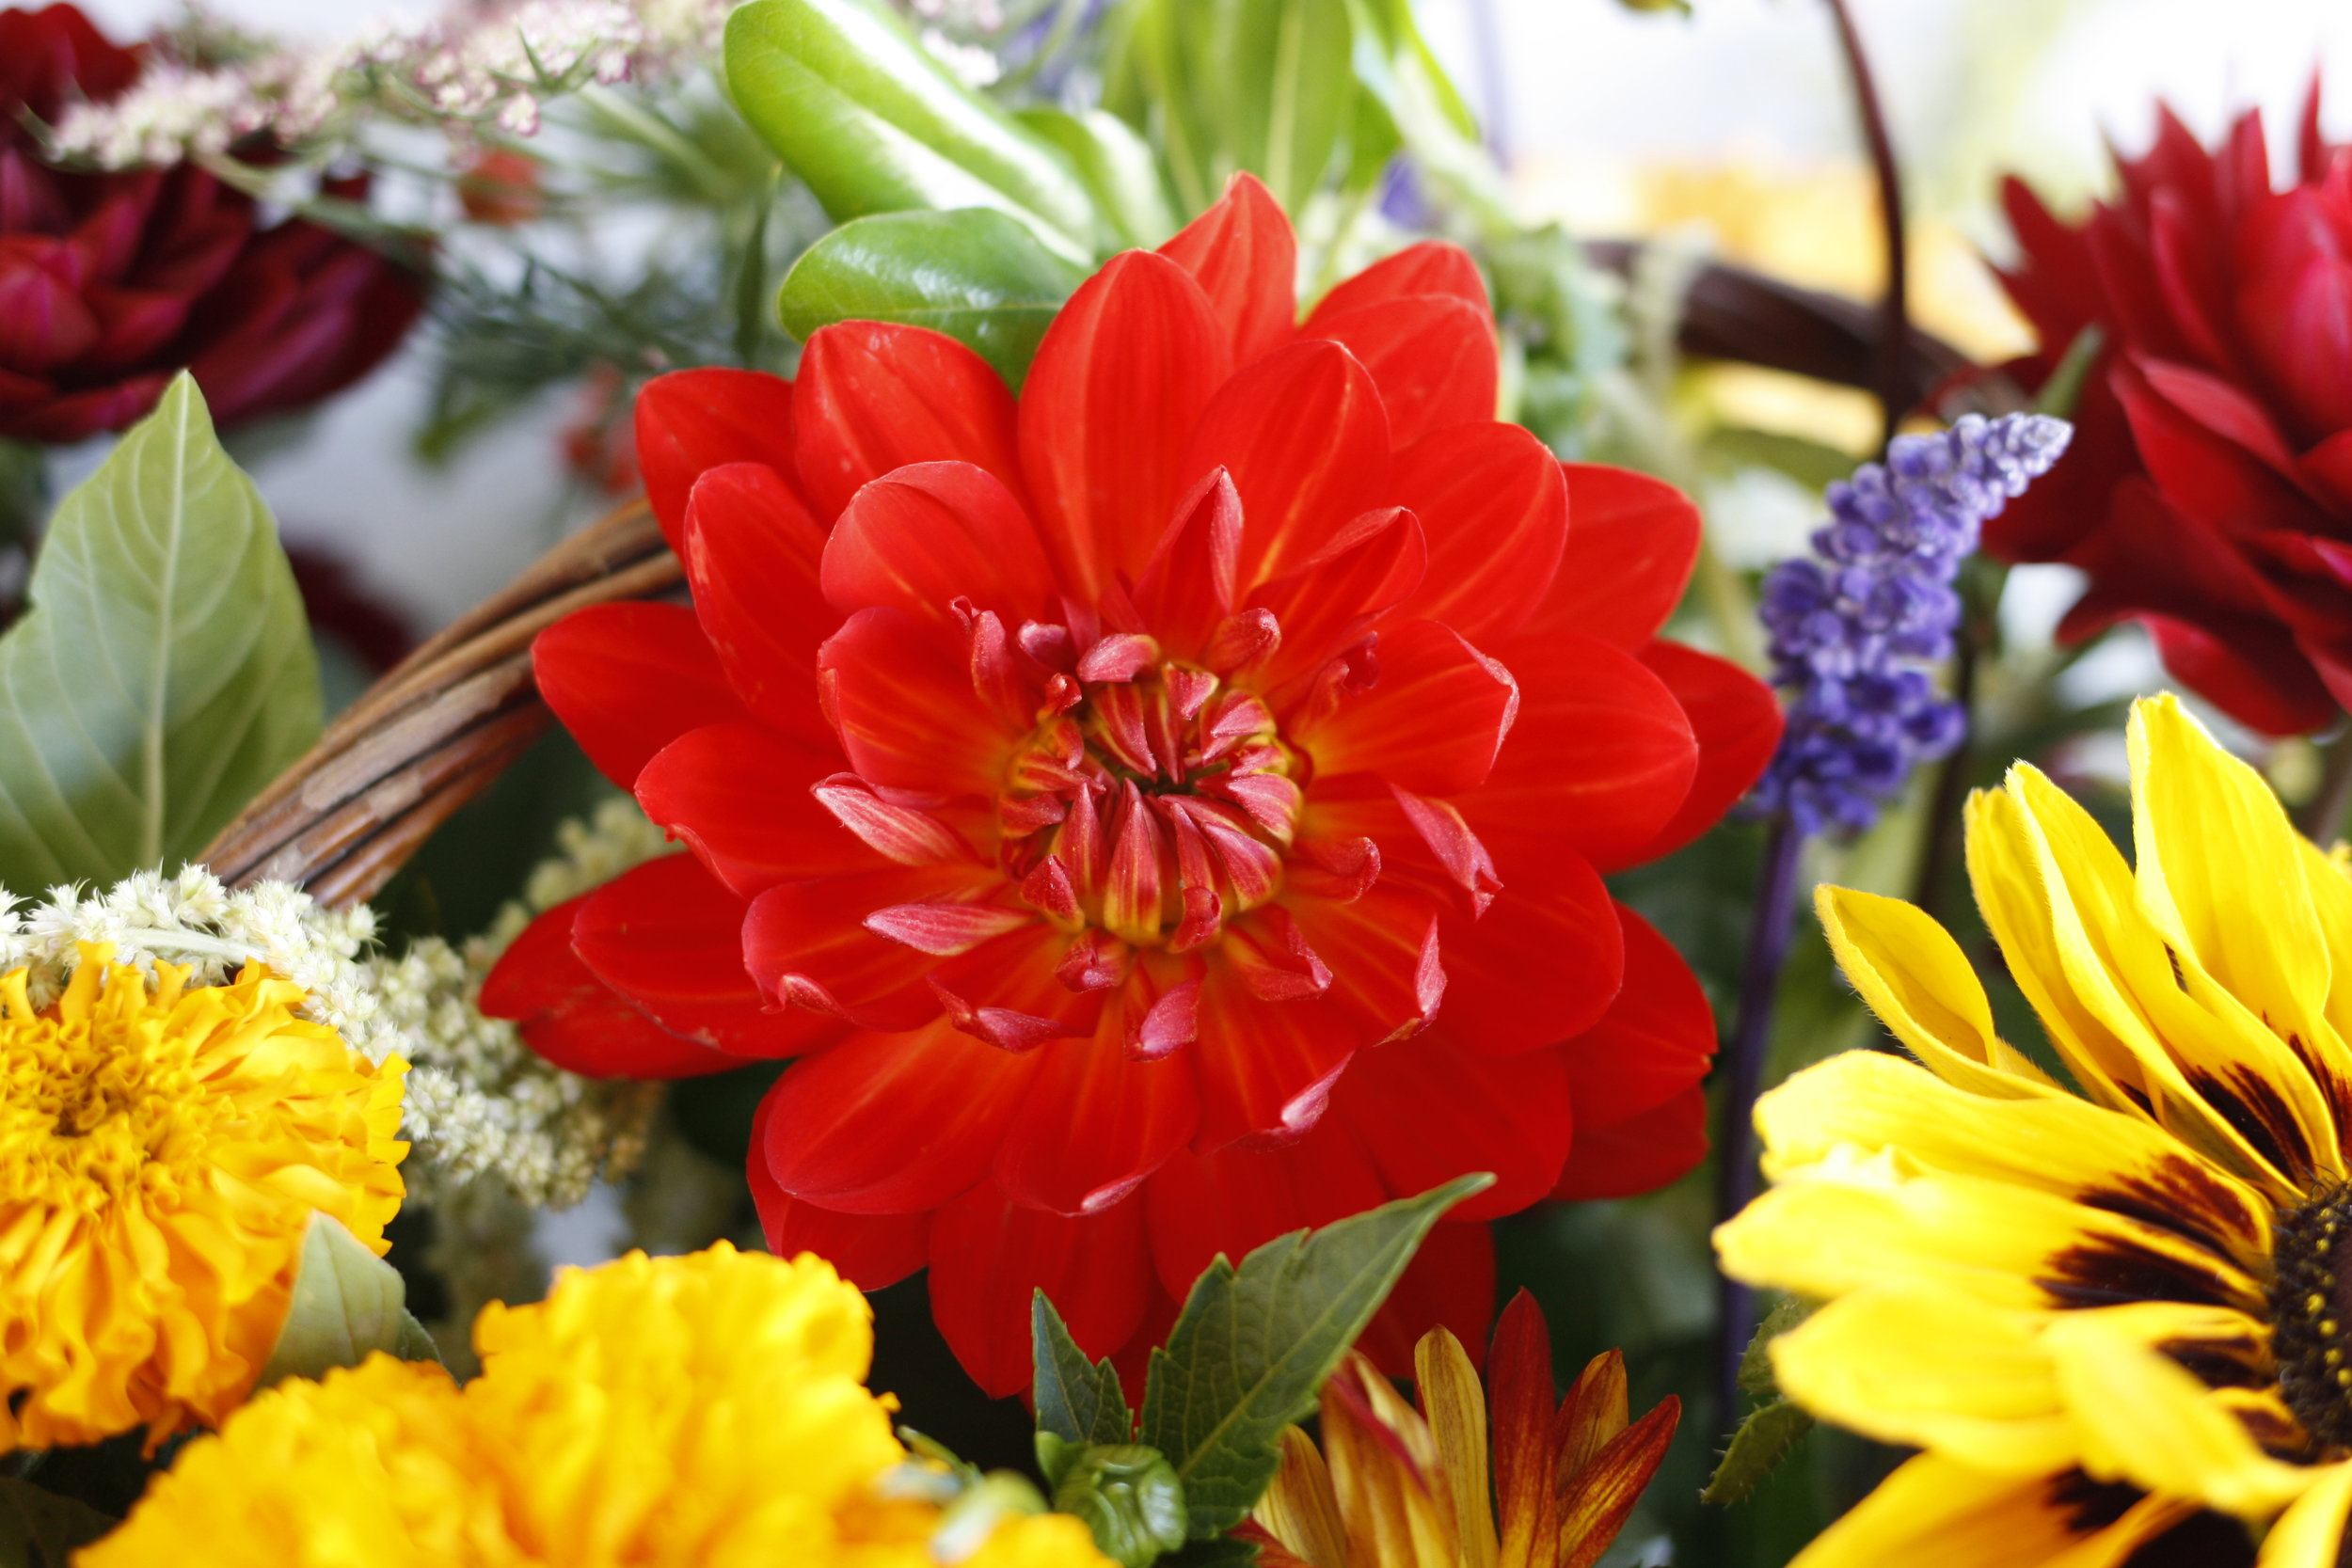 Local Dahlia from Van Dyke Farms